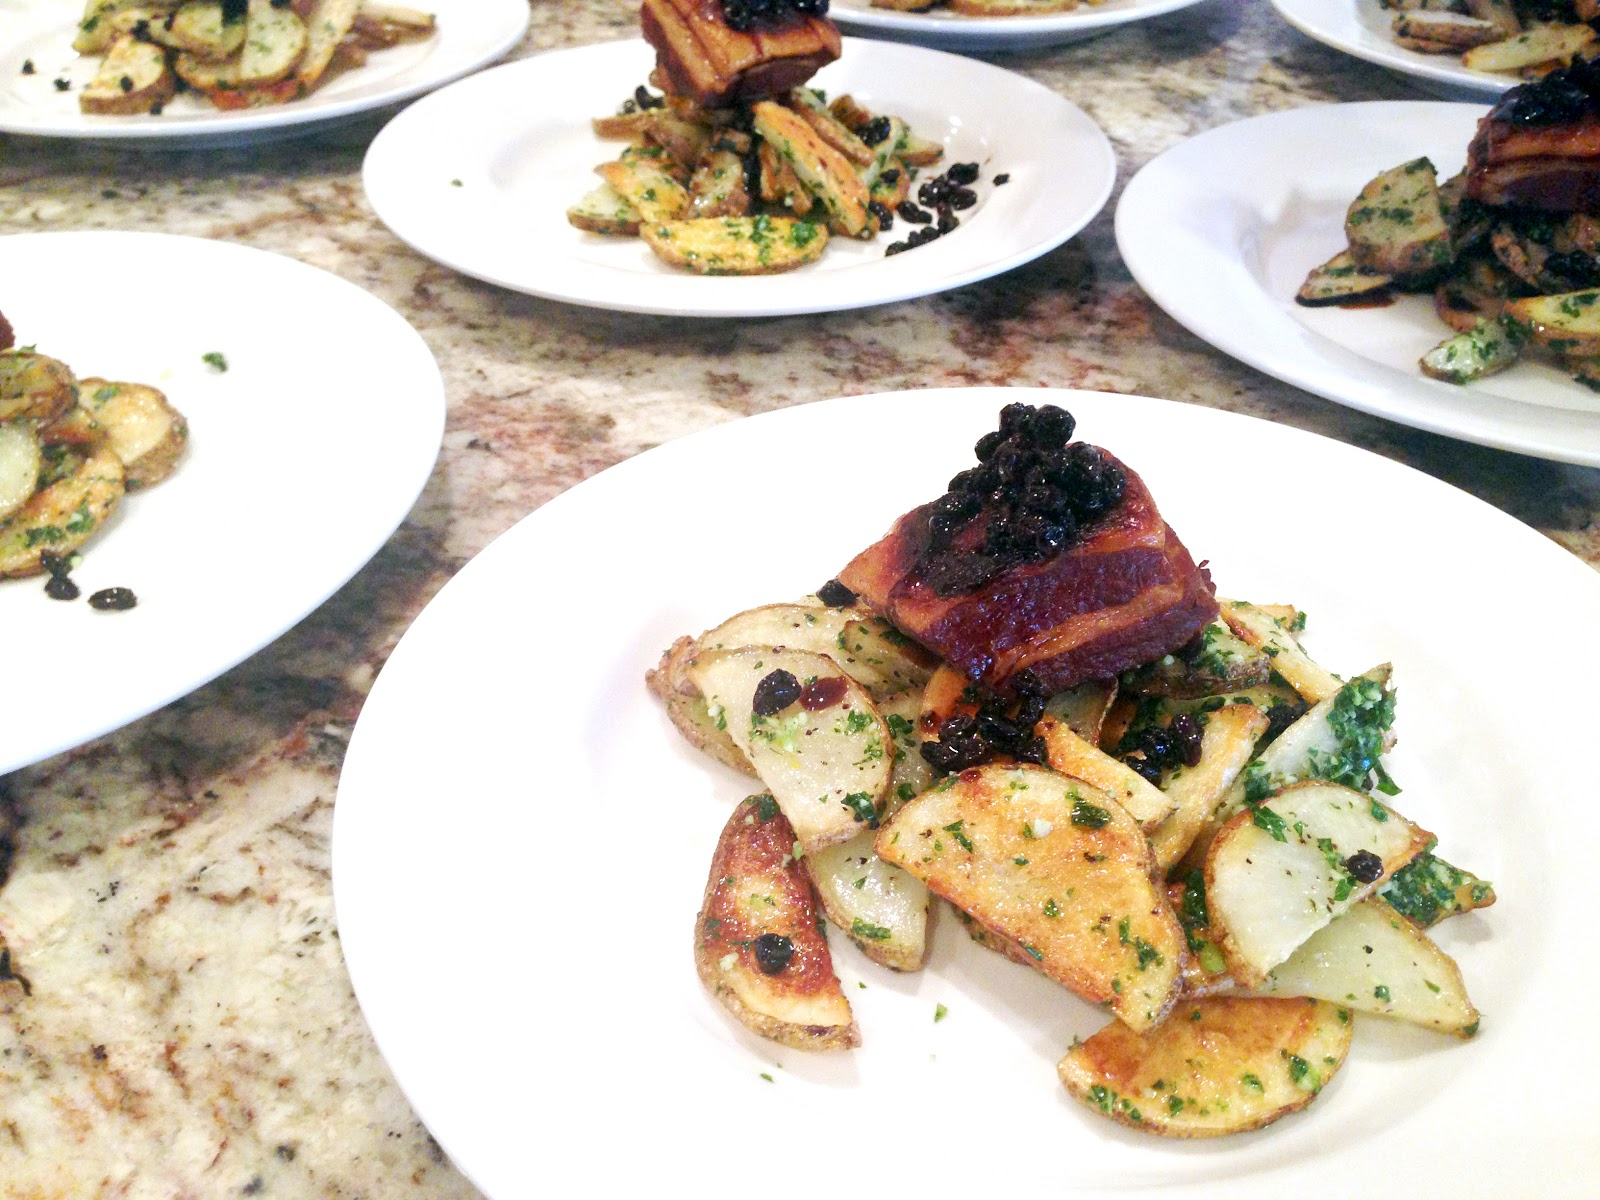 Crispy Pork Belly + Roasted Potatoes, Kale Pesto and Black Currants ...